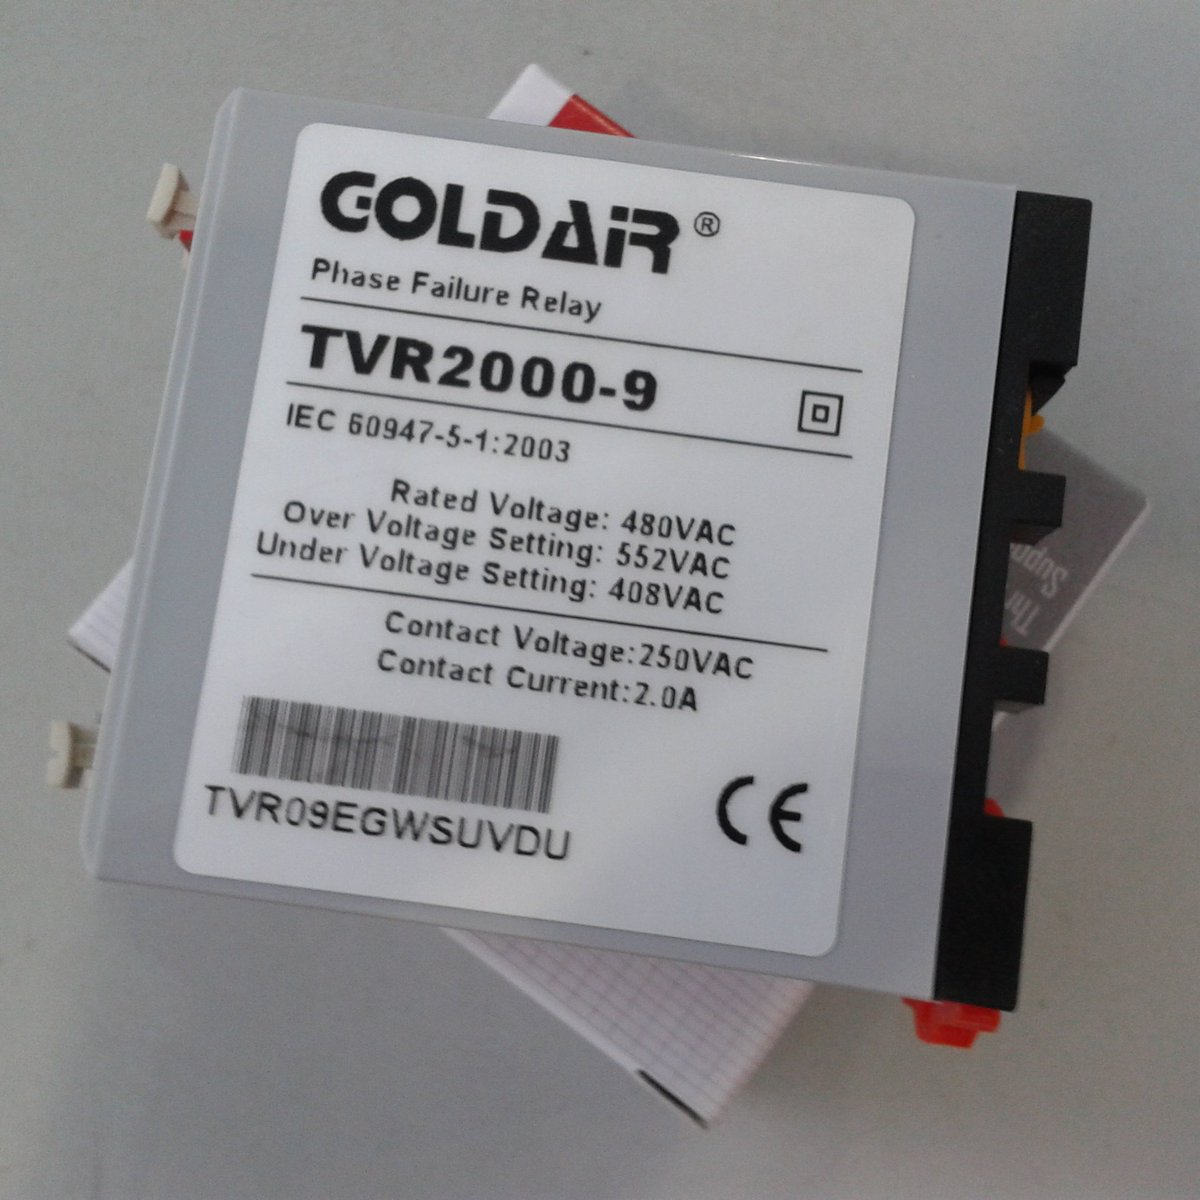 Goldair On Twitter Tvr2000 9 Failure Phase Relay 480vac15 Over Under Voltage Monitor Of Reversalphase Lossphase Unbalance Https Tco Vfn0yqkavt